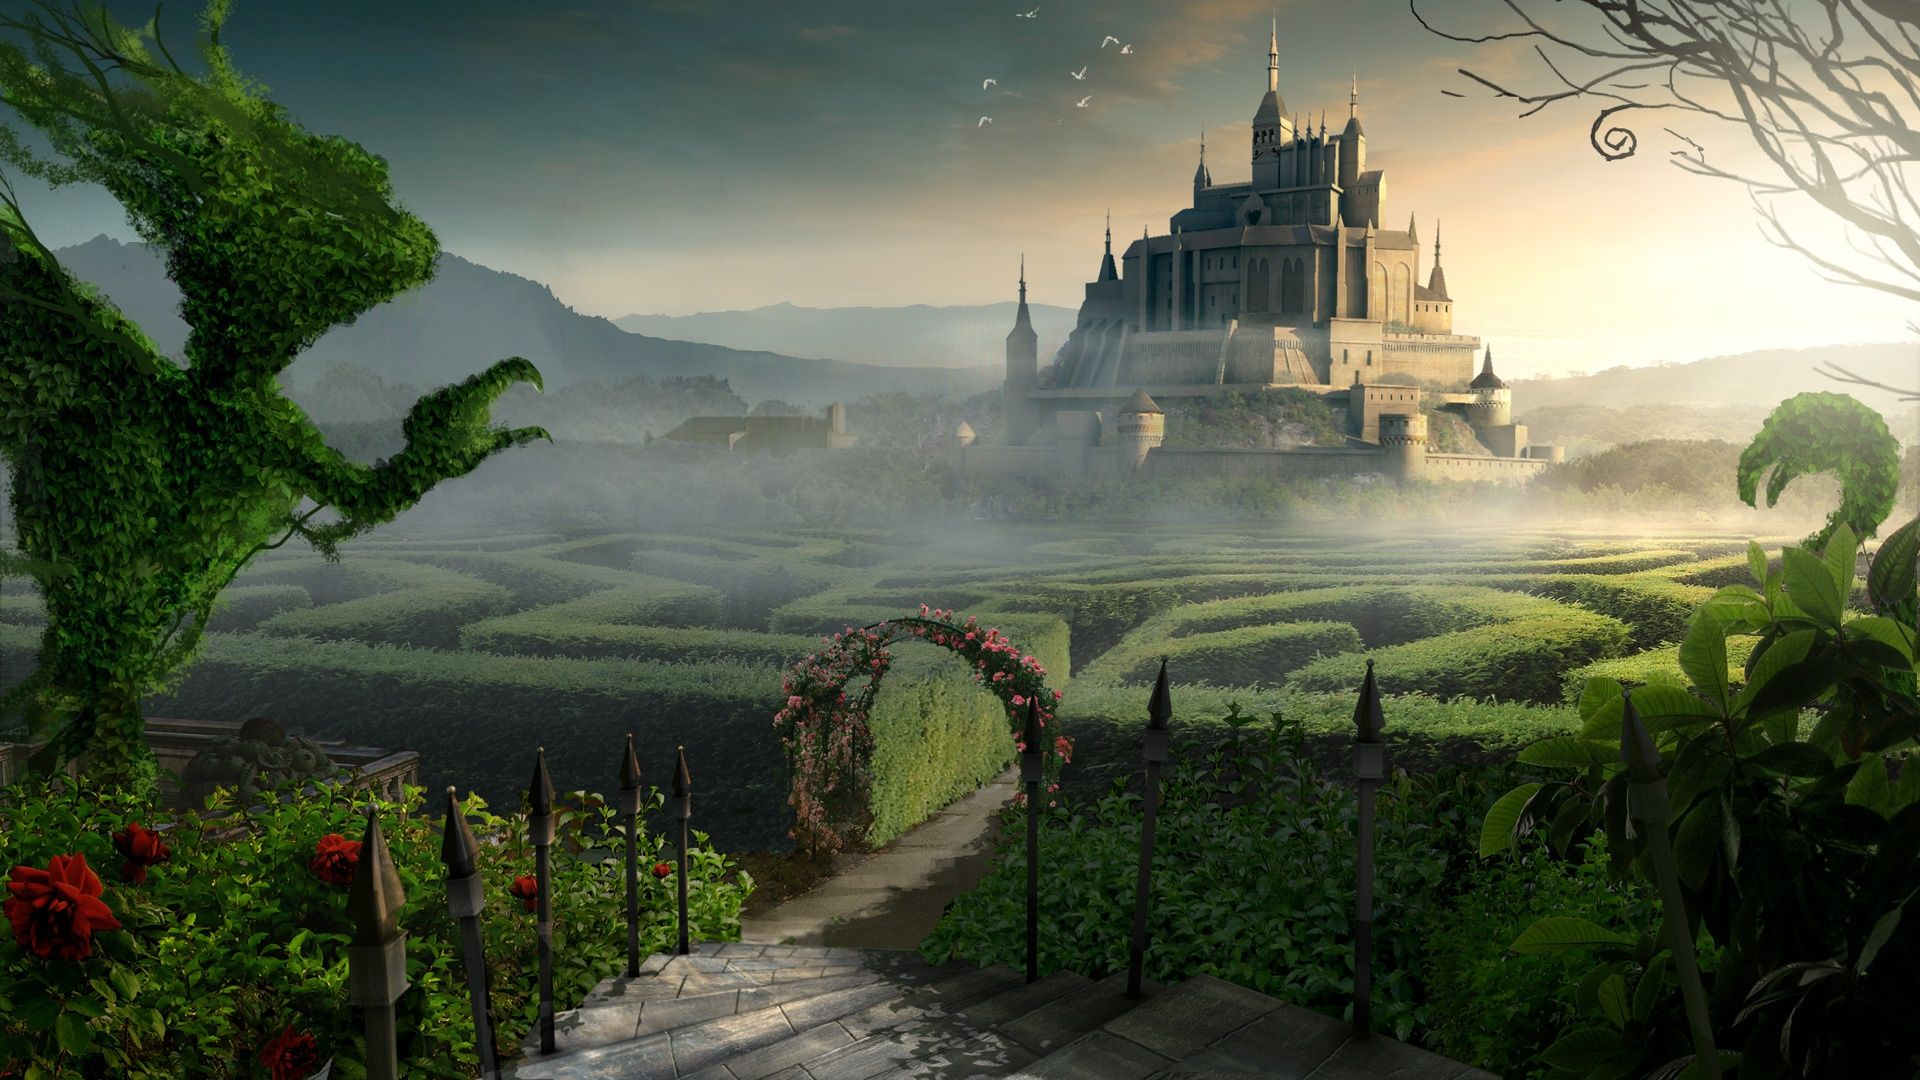 Labyrinth Art Castle Beyond The Labyrinth Garden Wallpaper